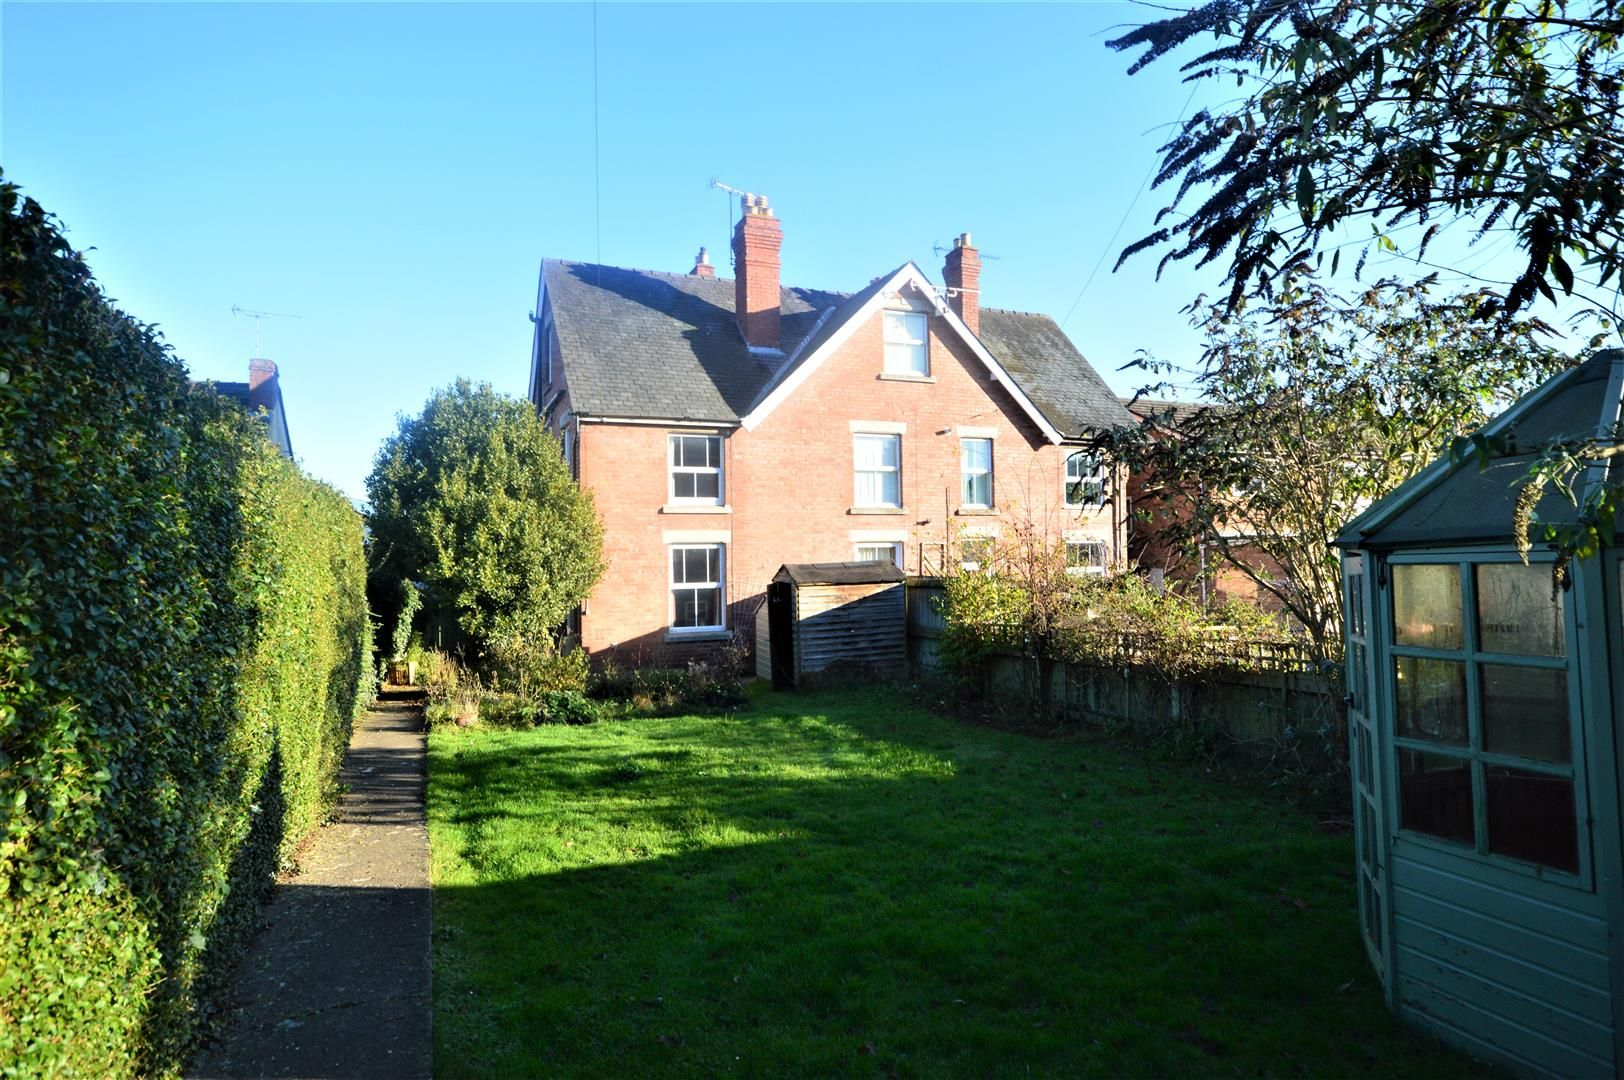 3 bed end-of-terrace for sale in Leominster 1